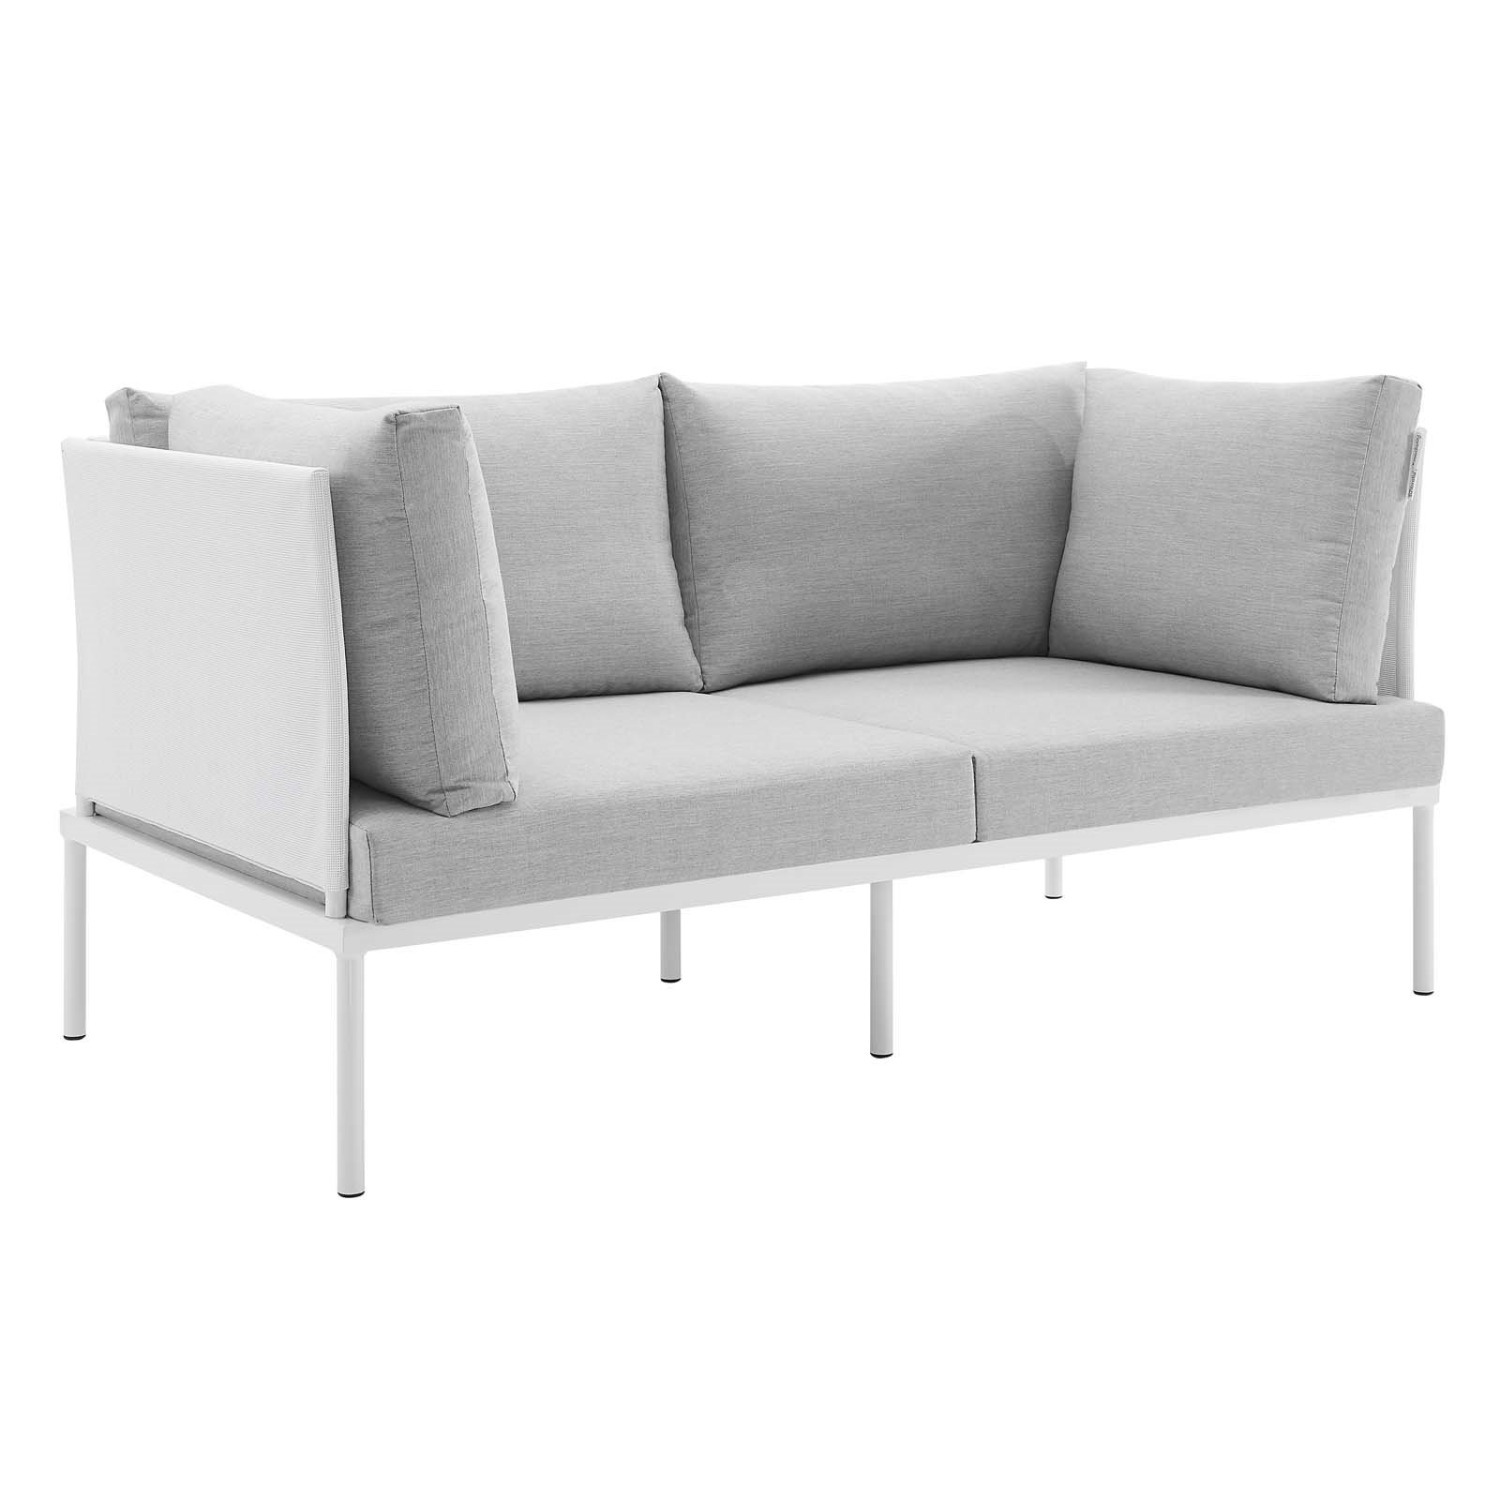 Outdoor Loveseat In White Frame & Gray Cushion - image-0